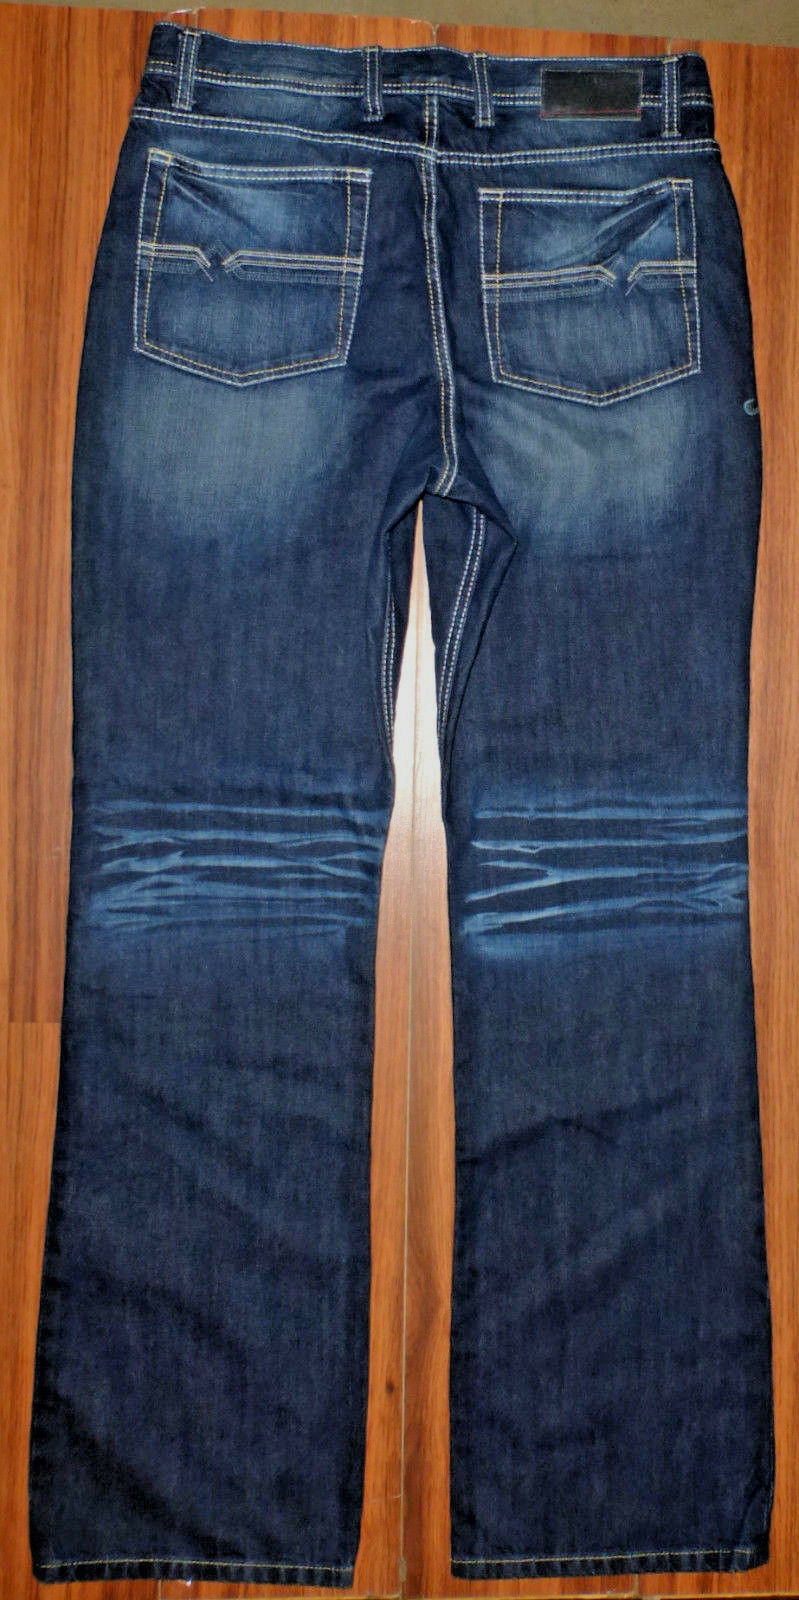 35c77699 NEW MENS SOUTHERN THREAD THE TRENT DARK WASH BOOTCUT JEANS SIZE 36XL 36X37